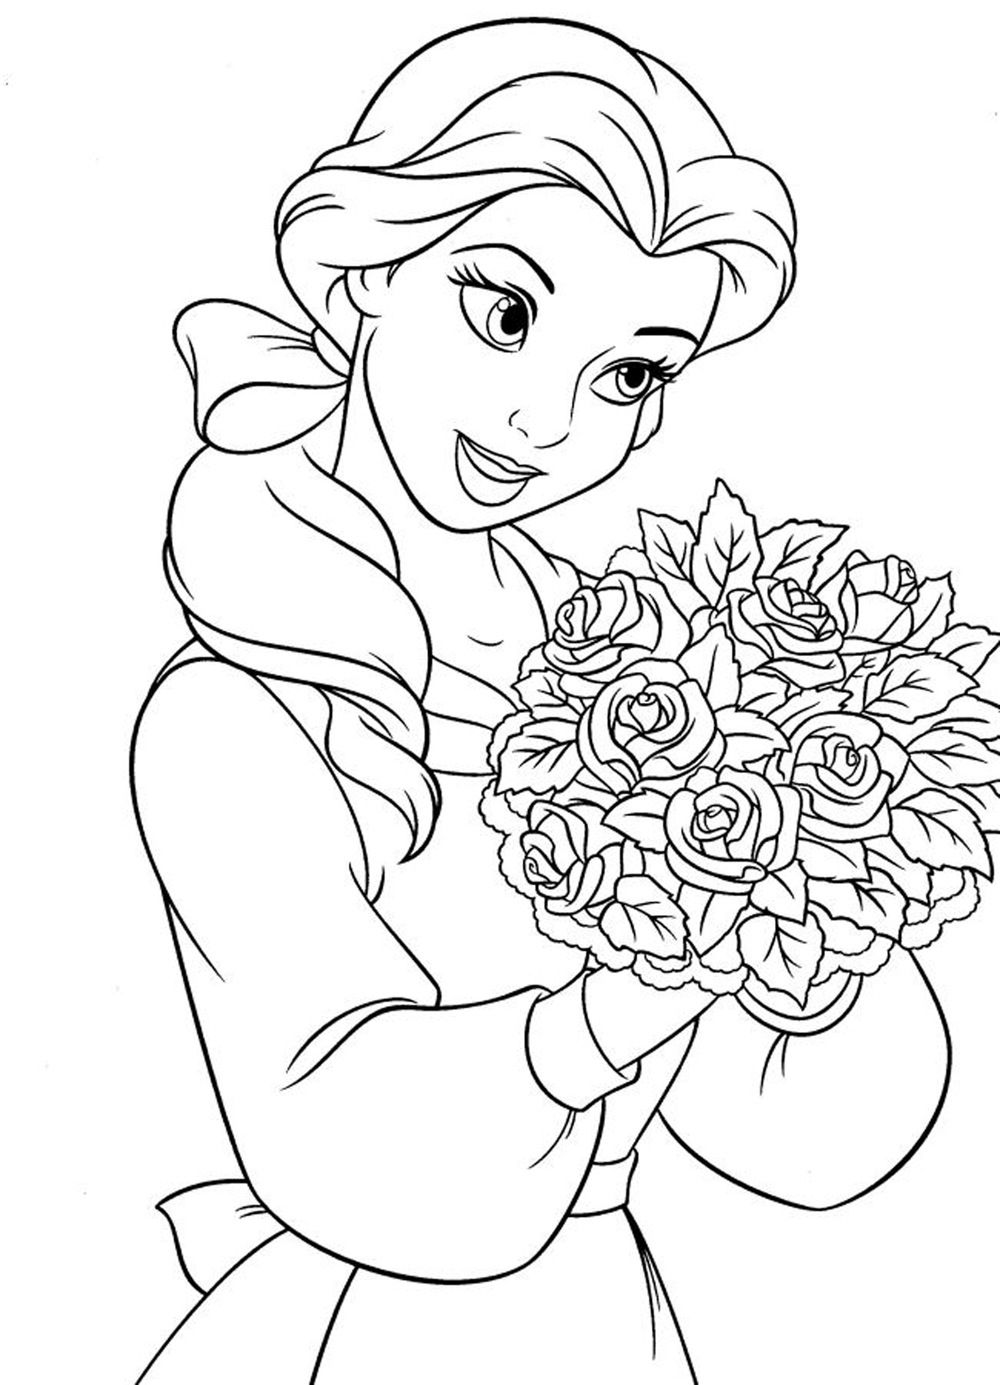 Girl Cartoon Characters Coloring Pages - AZ Coloring Pages